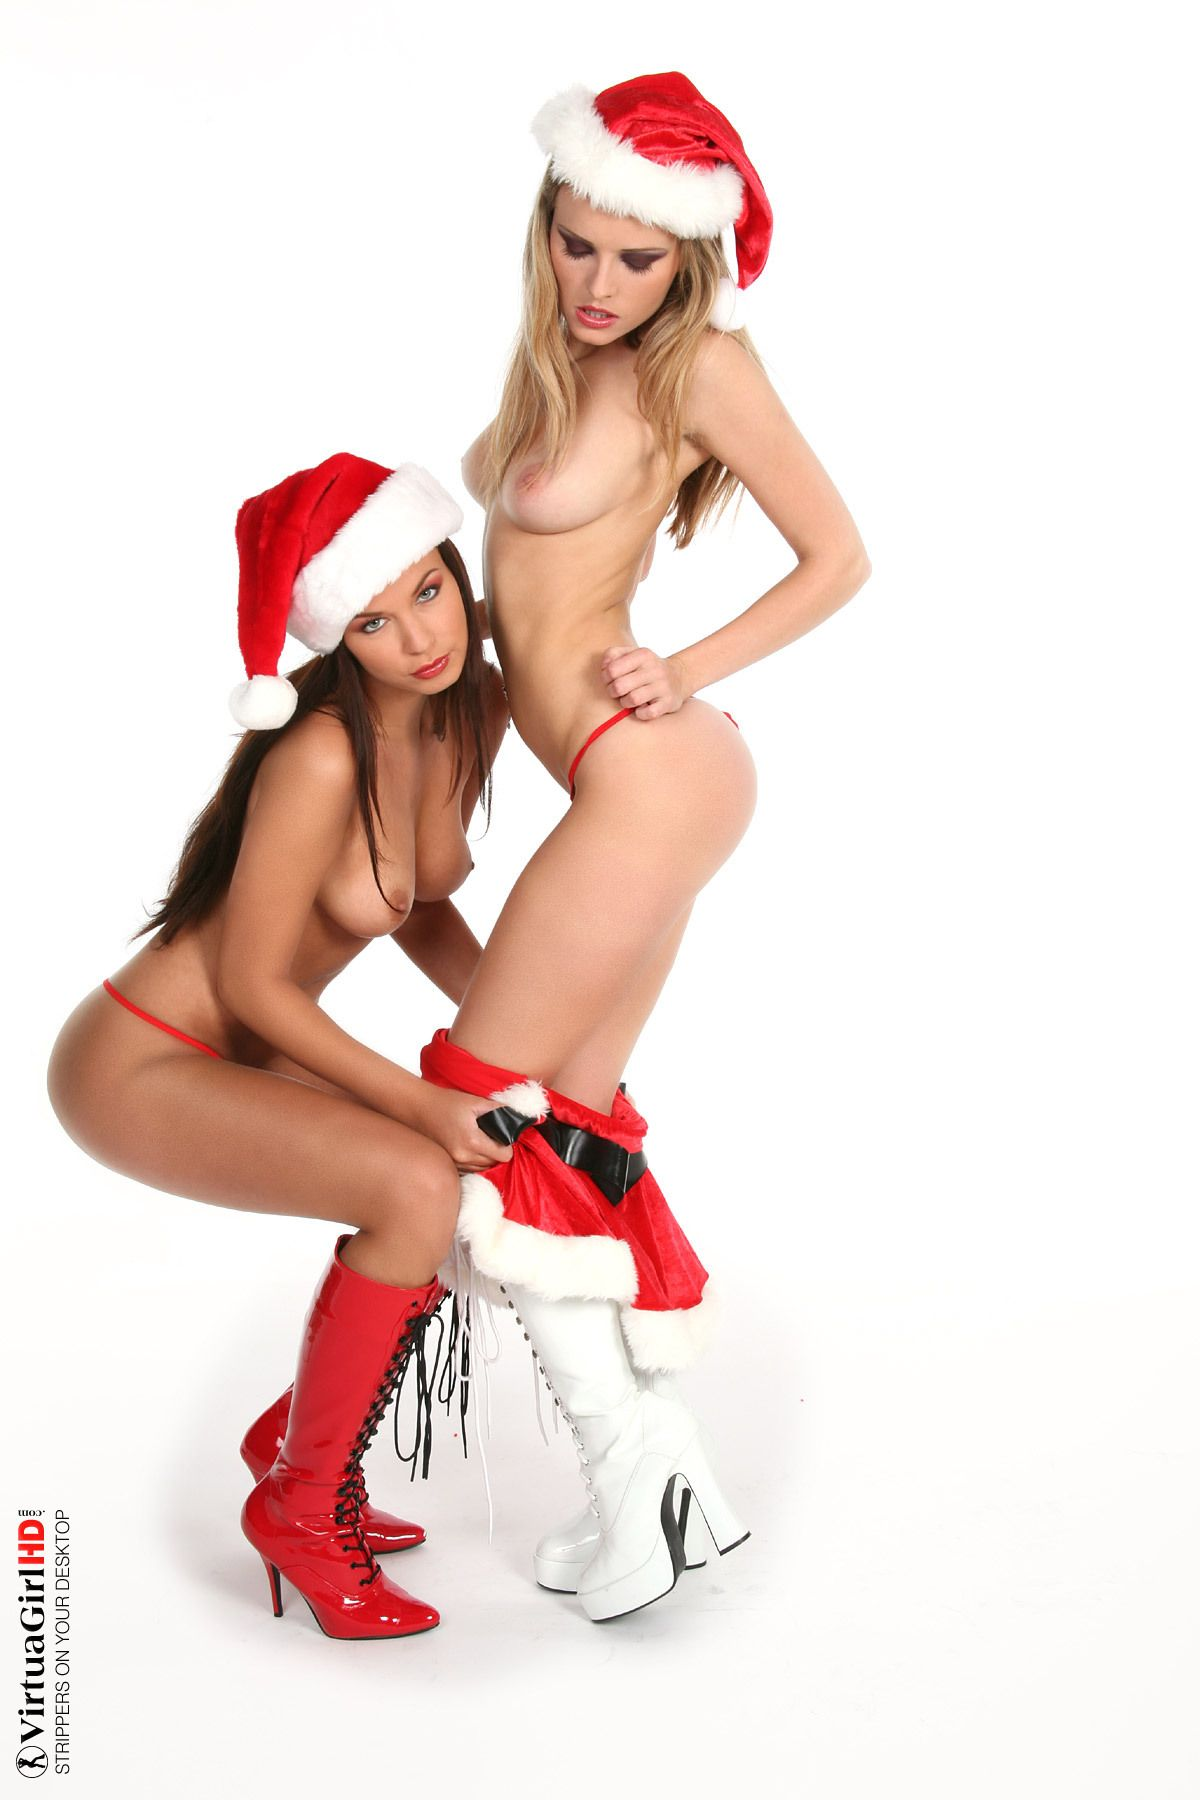 VirtuaGirl - Nikky Case & Mina - CHRISTMAS JEWELS 02